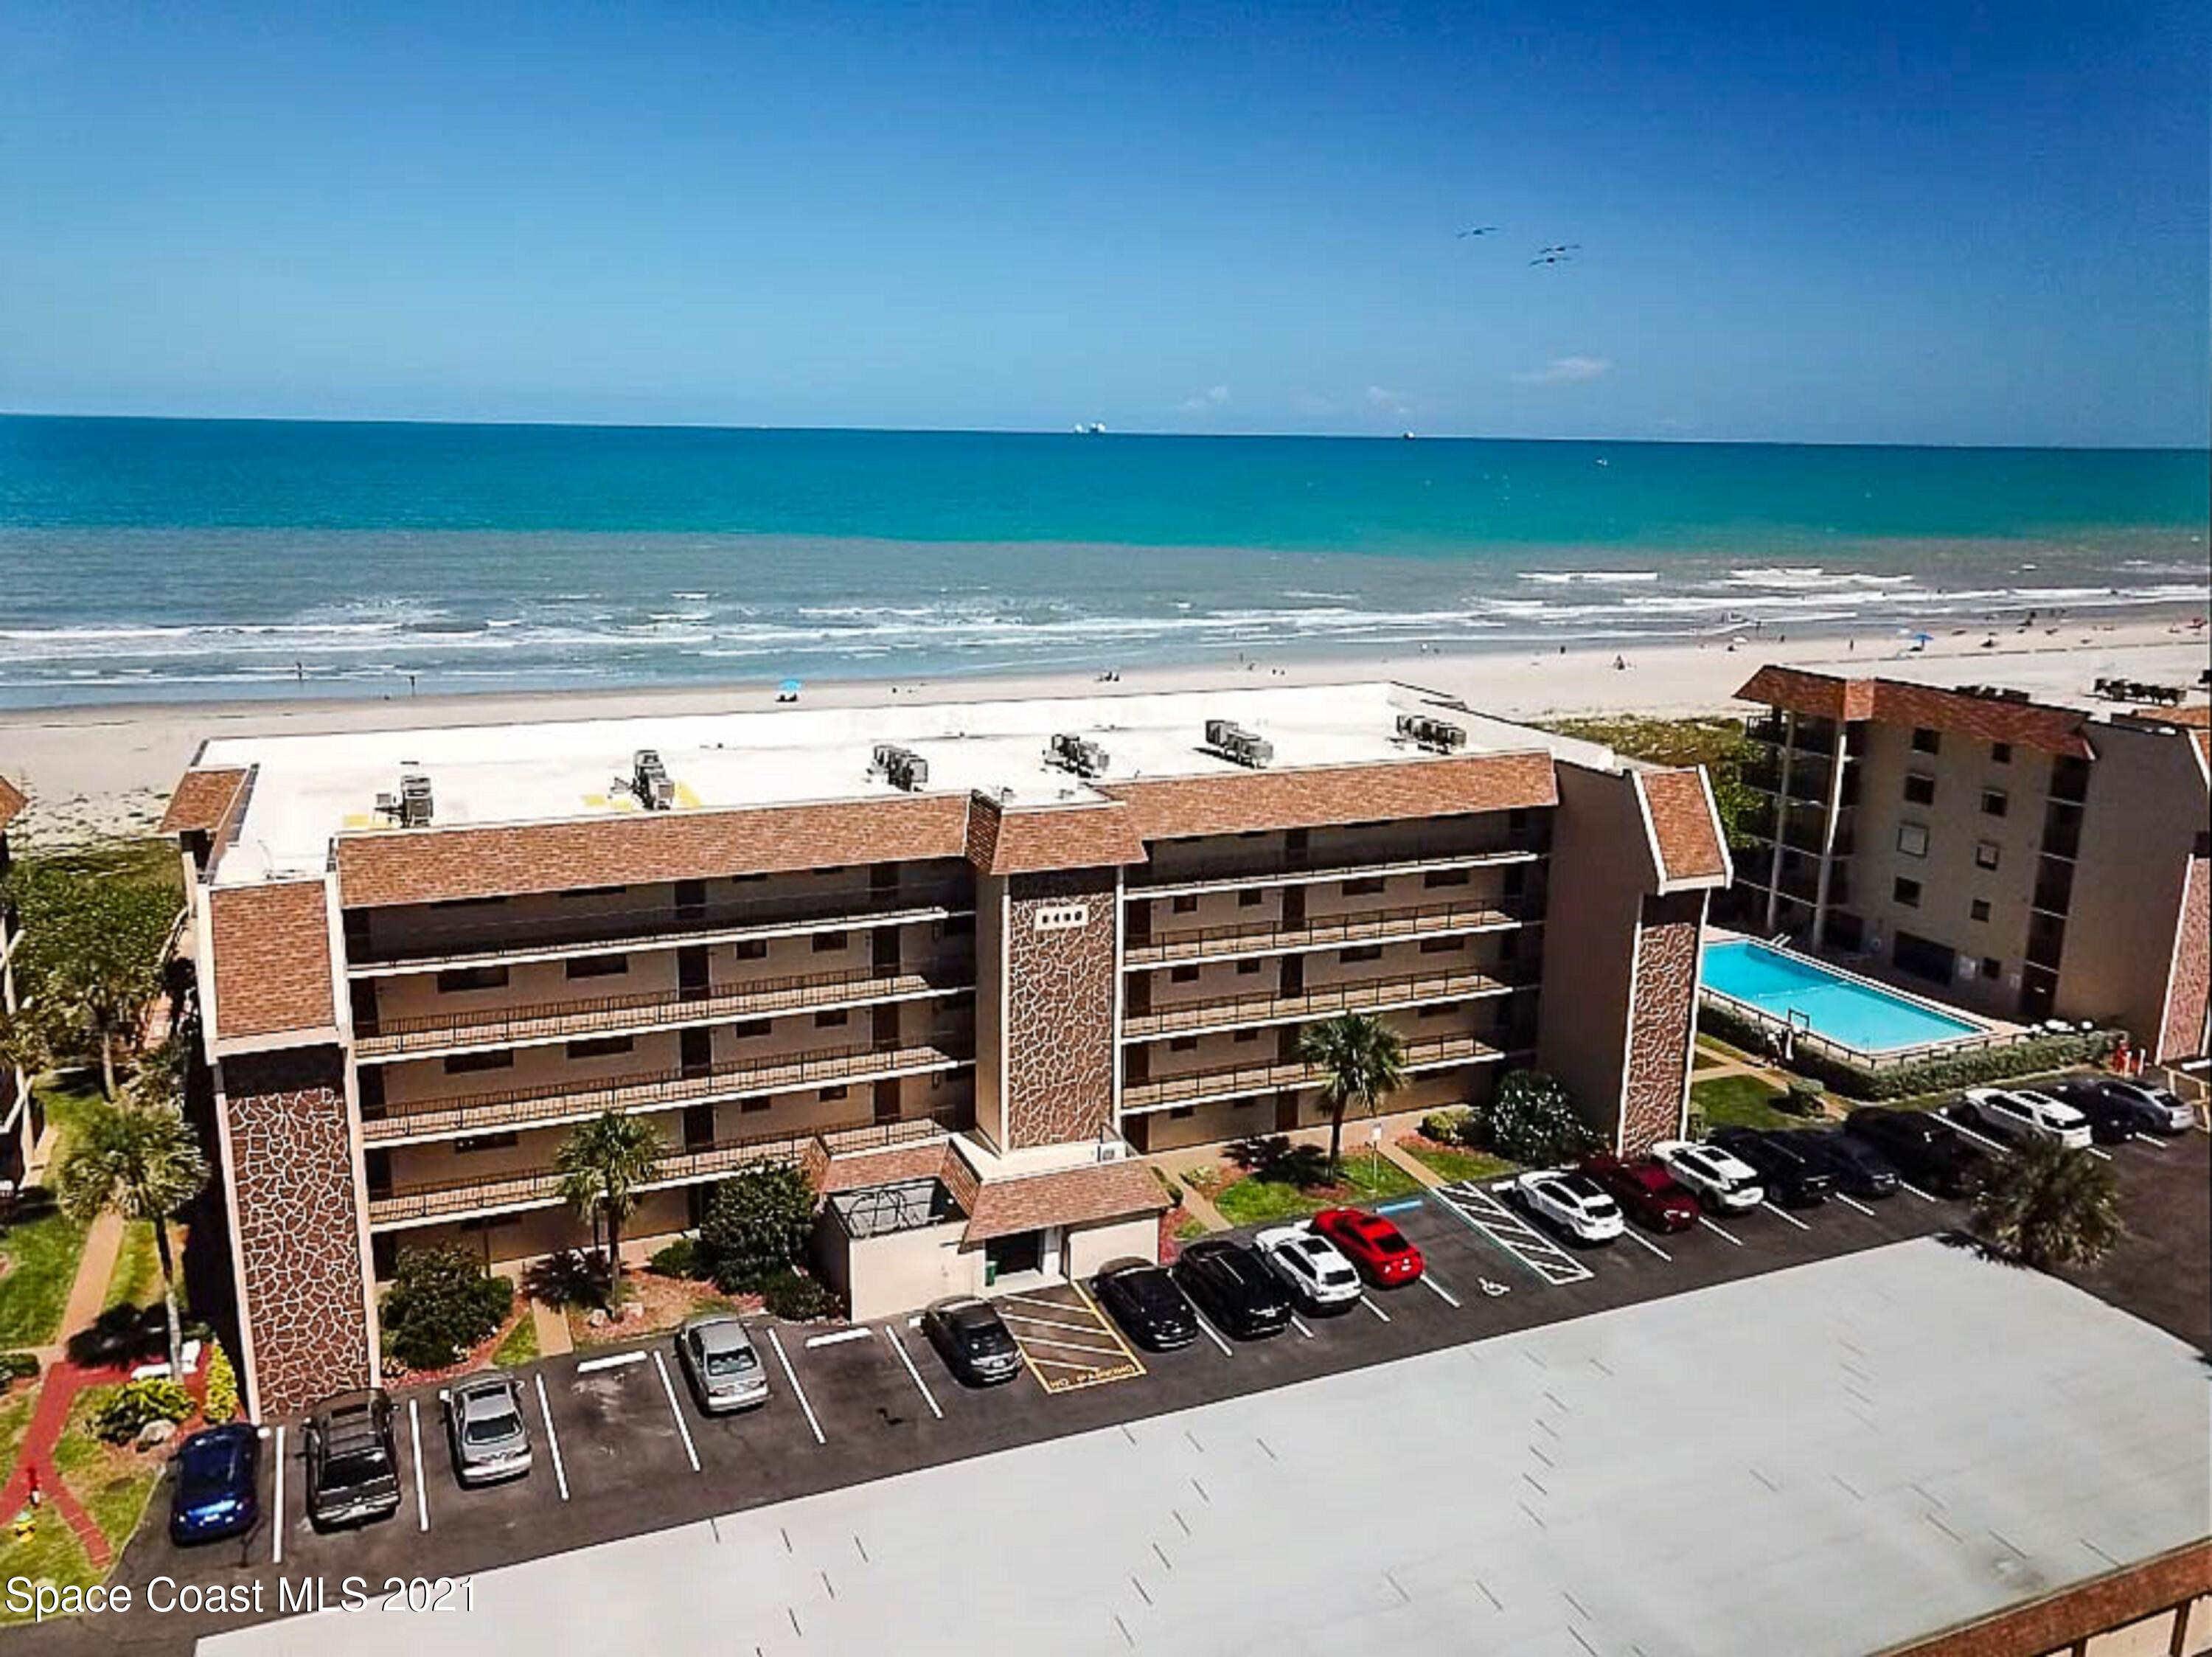 Direct Oceanfront 2 Bed 2 Bath fully furnished condominium in the highly sought after Canaveral Sands Community. As you enter the unit, you enter the well appointed kitchen with loads of cabinets and ample counter top space. The kitchen also features a breakfast bar that connects to the dinette. The dining area is spacious and can accommodate a large table suitable for hosting a large family. The dining area then flows into the living room which is a fantastic size and provides immediate access to the outdoor patio. The master suite is large with ample room for a sitting area as well as a walk in closet and newly renovated walk in shower. The second bedroom is spacious and currently holds two full beds with ample closet space. The rear covered patio is amazing with enclosed storage for all your beach toys. The community pool and beach access are literally steps away from the back of the covered patio. The Canaveral Sands community is well maintained and provides access to great amenities to include a nice sized pool and wash down. In addition, this community is minutes away from Port Canaveral and endless dining and entertainment options. If you're looking for direct oceanfront beach condo that's in the center of it all, then look no further, you're home.